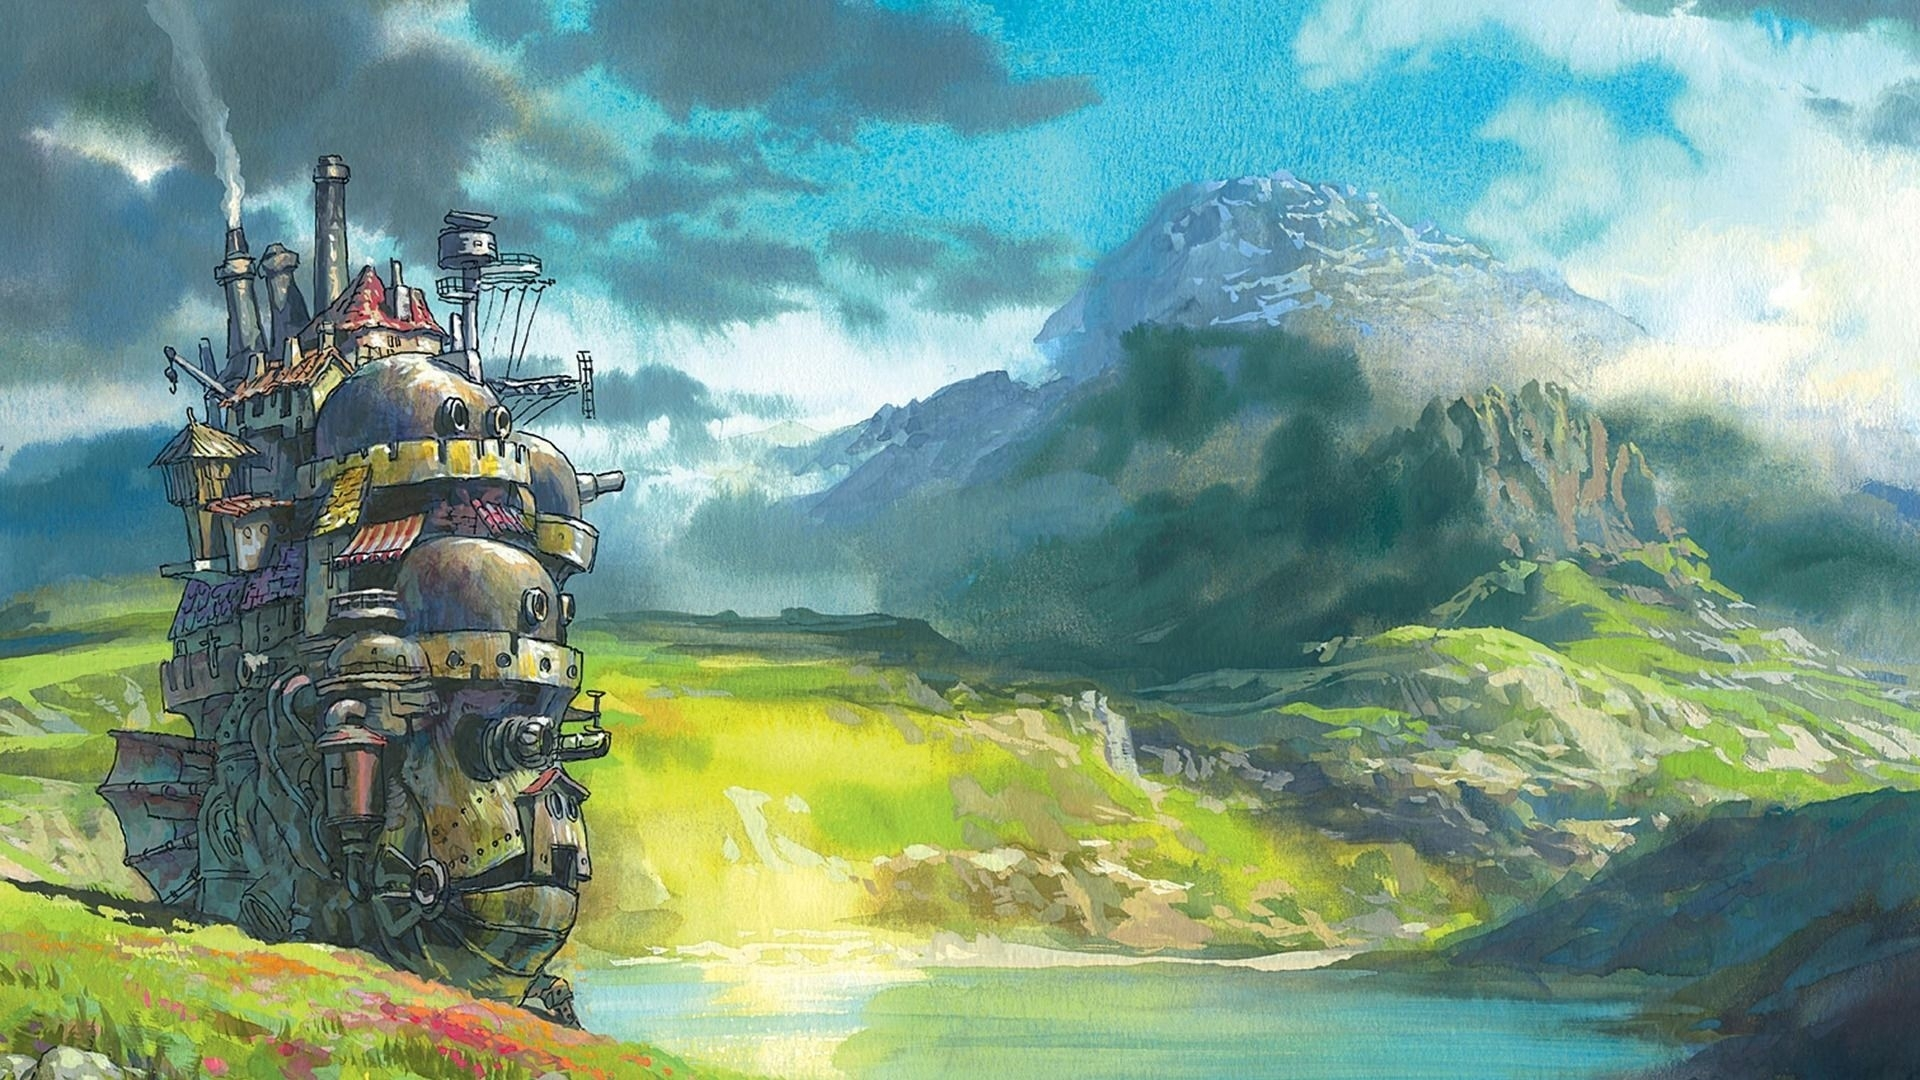 studio ghibli hd wallpaper | 1920x1080 | id:46392 | disney | pinterest